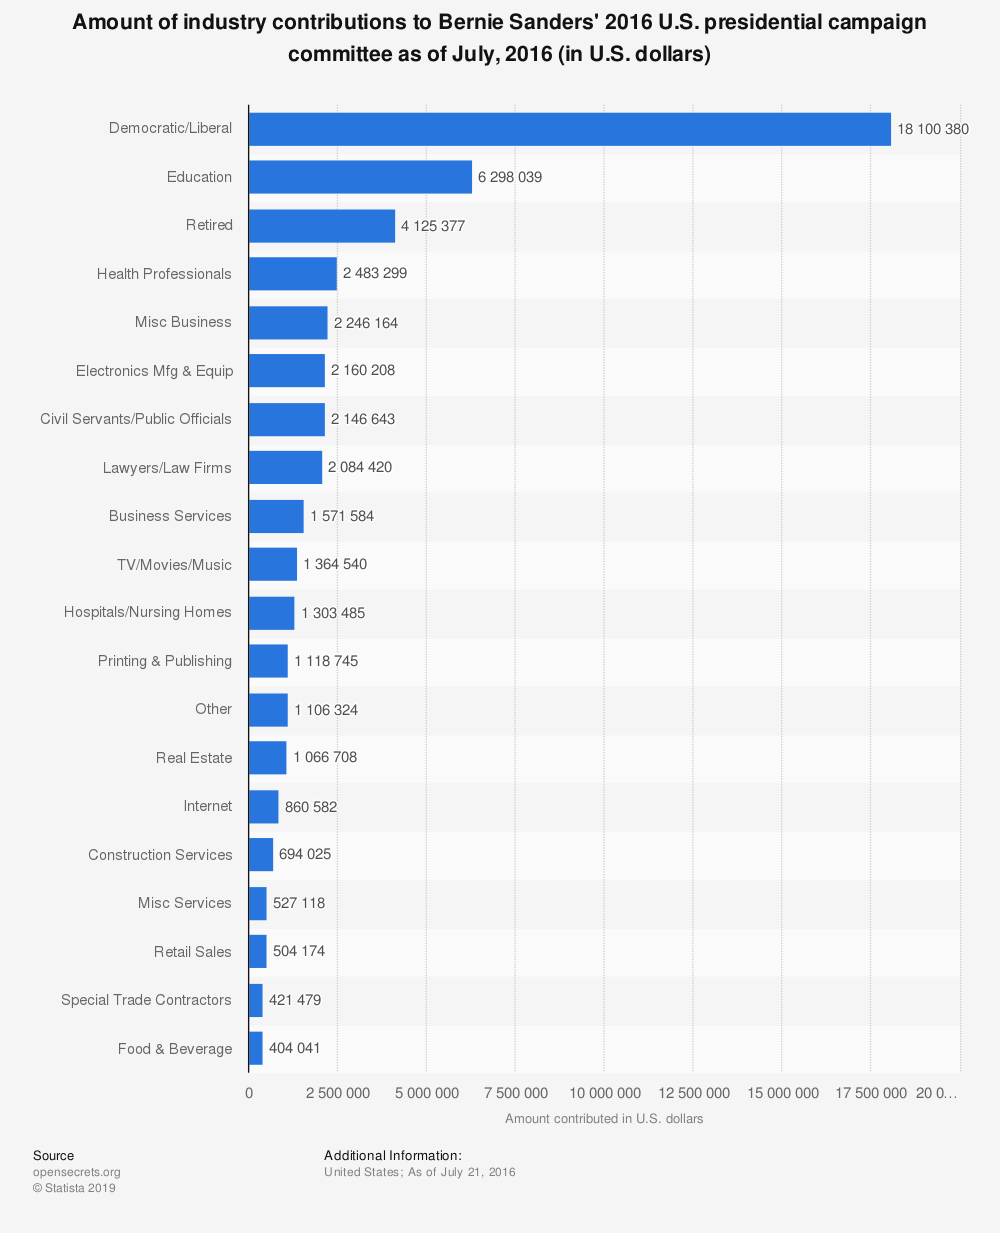 Statistic: Amount of industry contributions to Bernie Sanders' 2016 U.S. presidential campaign committee as of July, 2016 (in U.S. dollars) | Statista